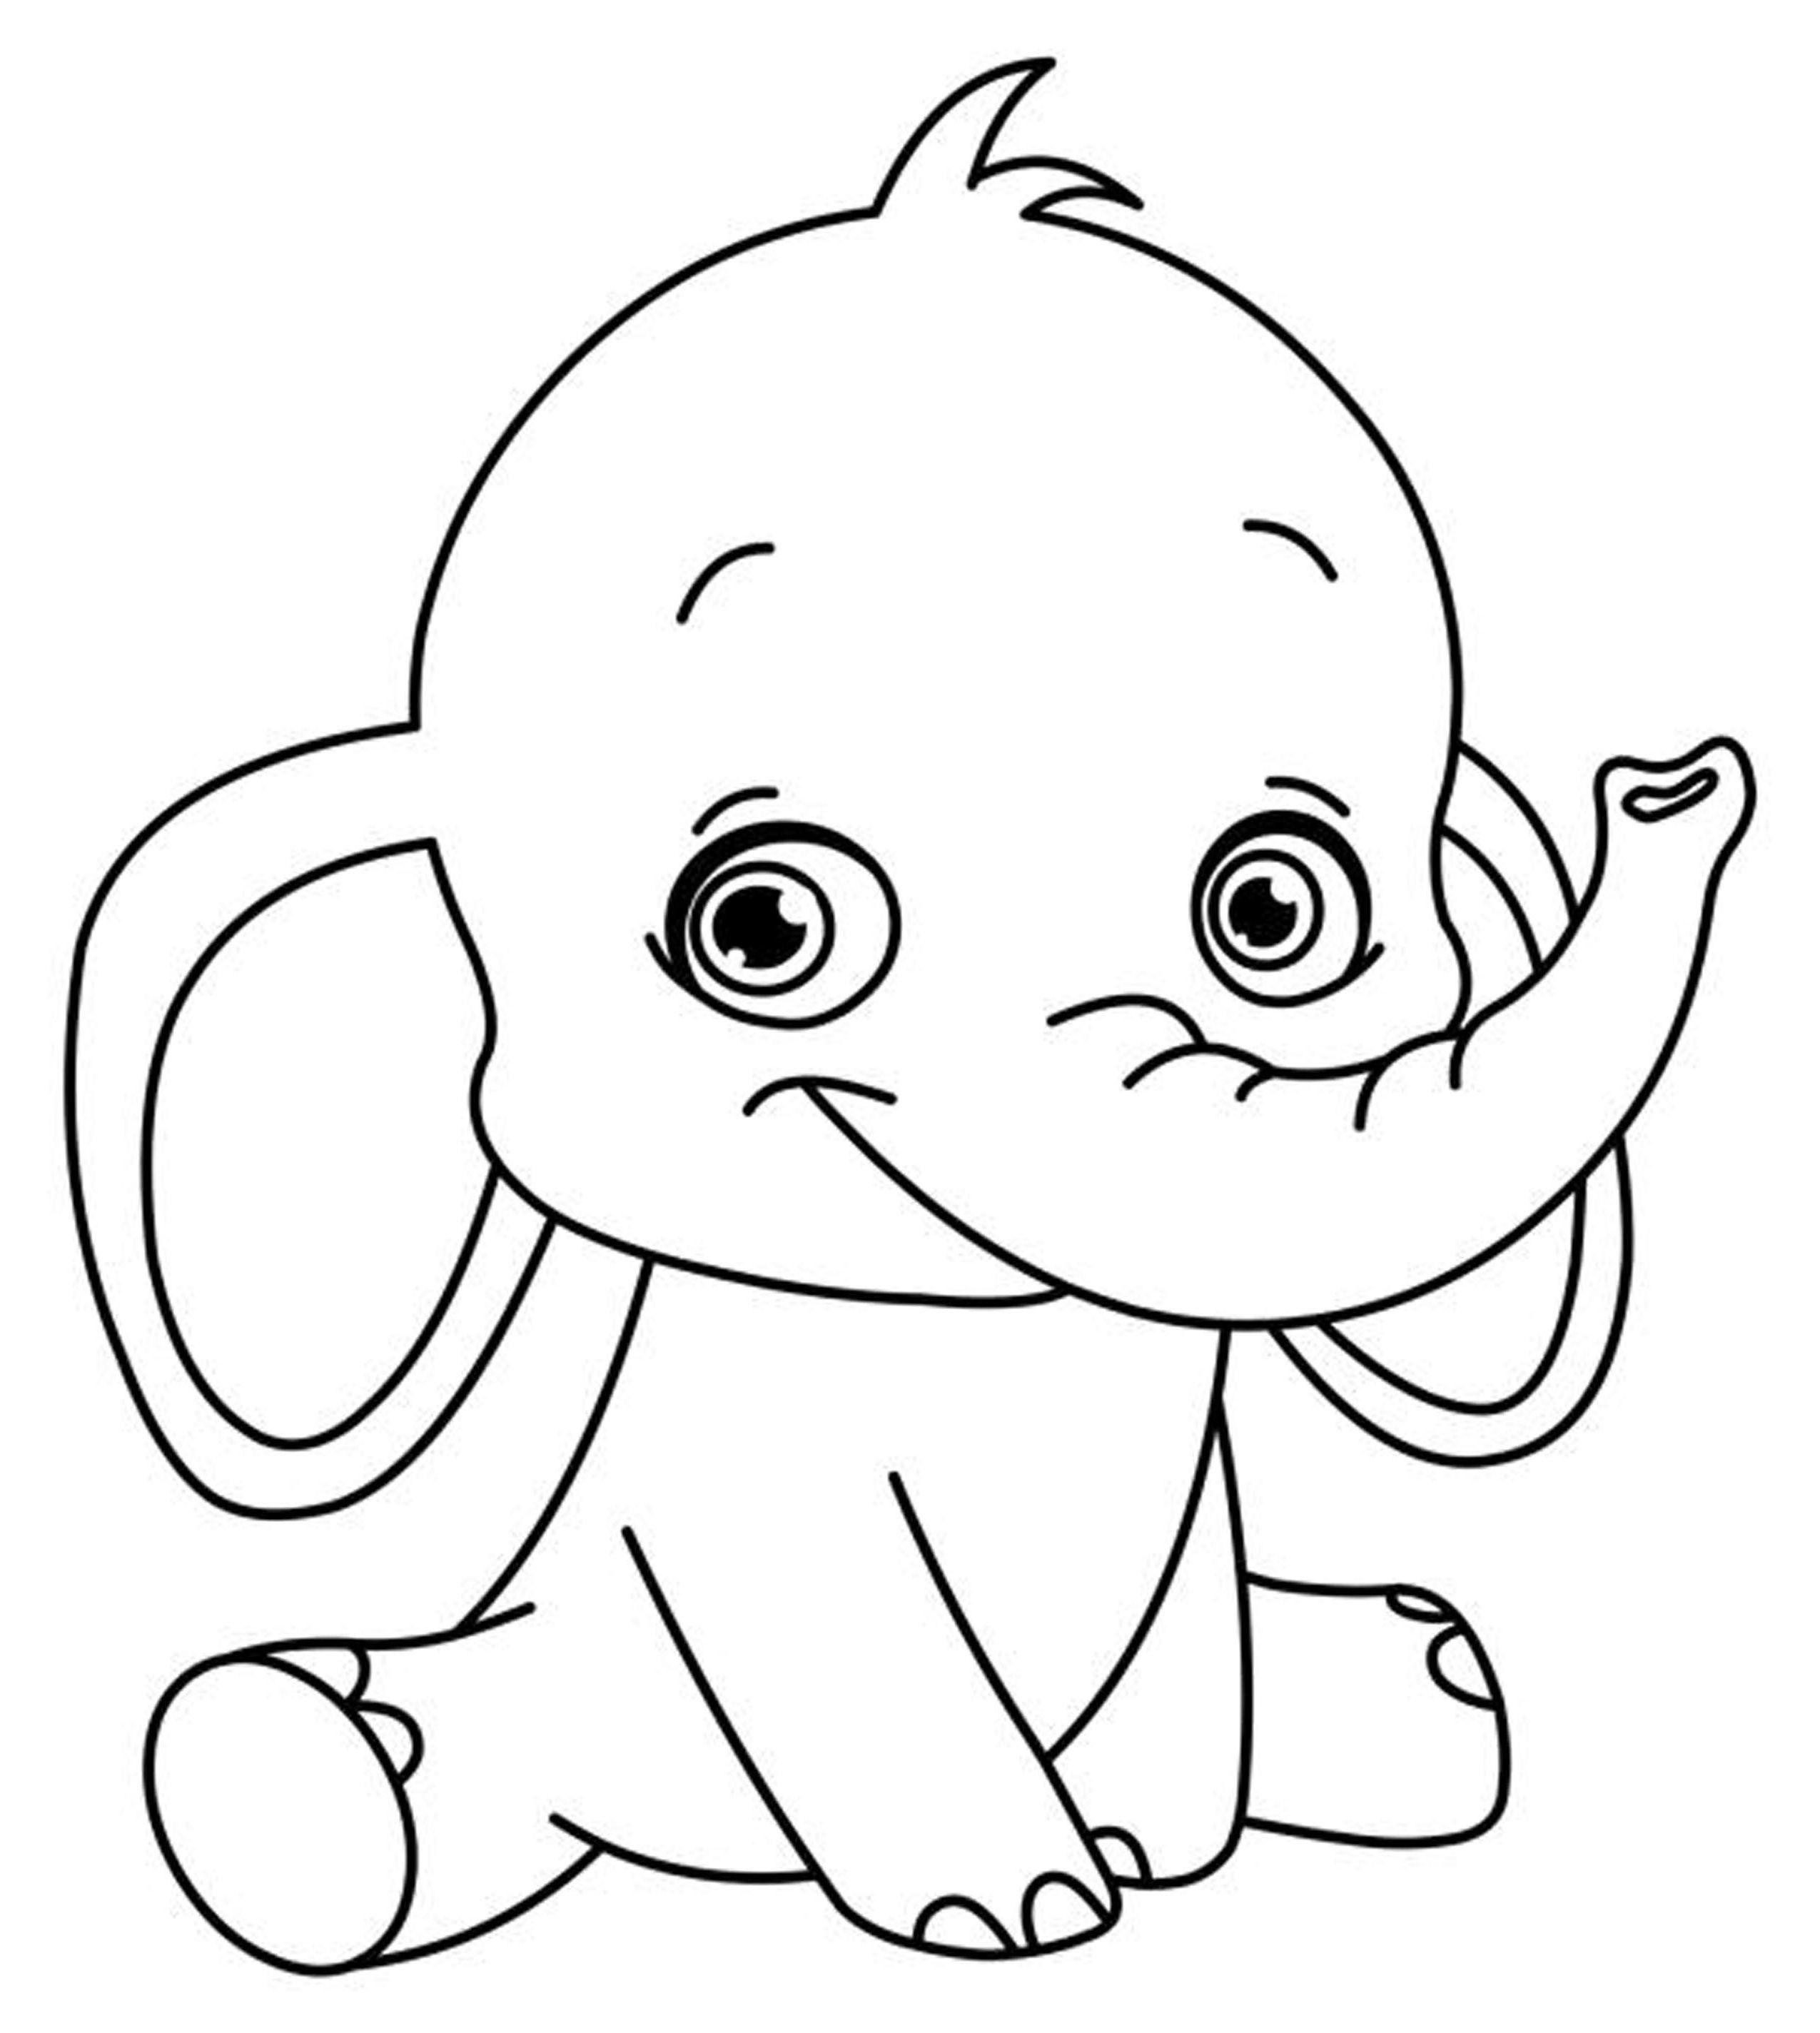 coloring images for kids printable coloring pages for kids coloring pages for kids kids coloring images for